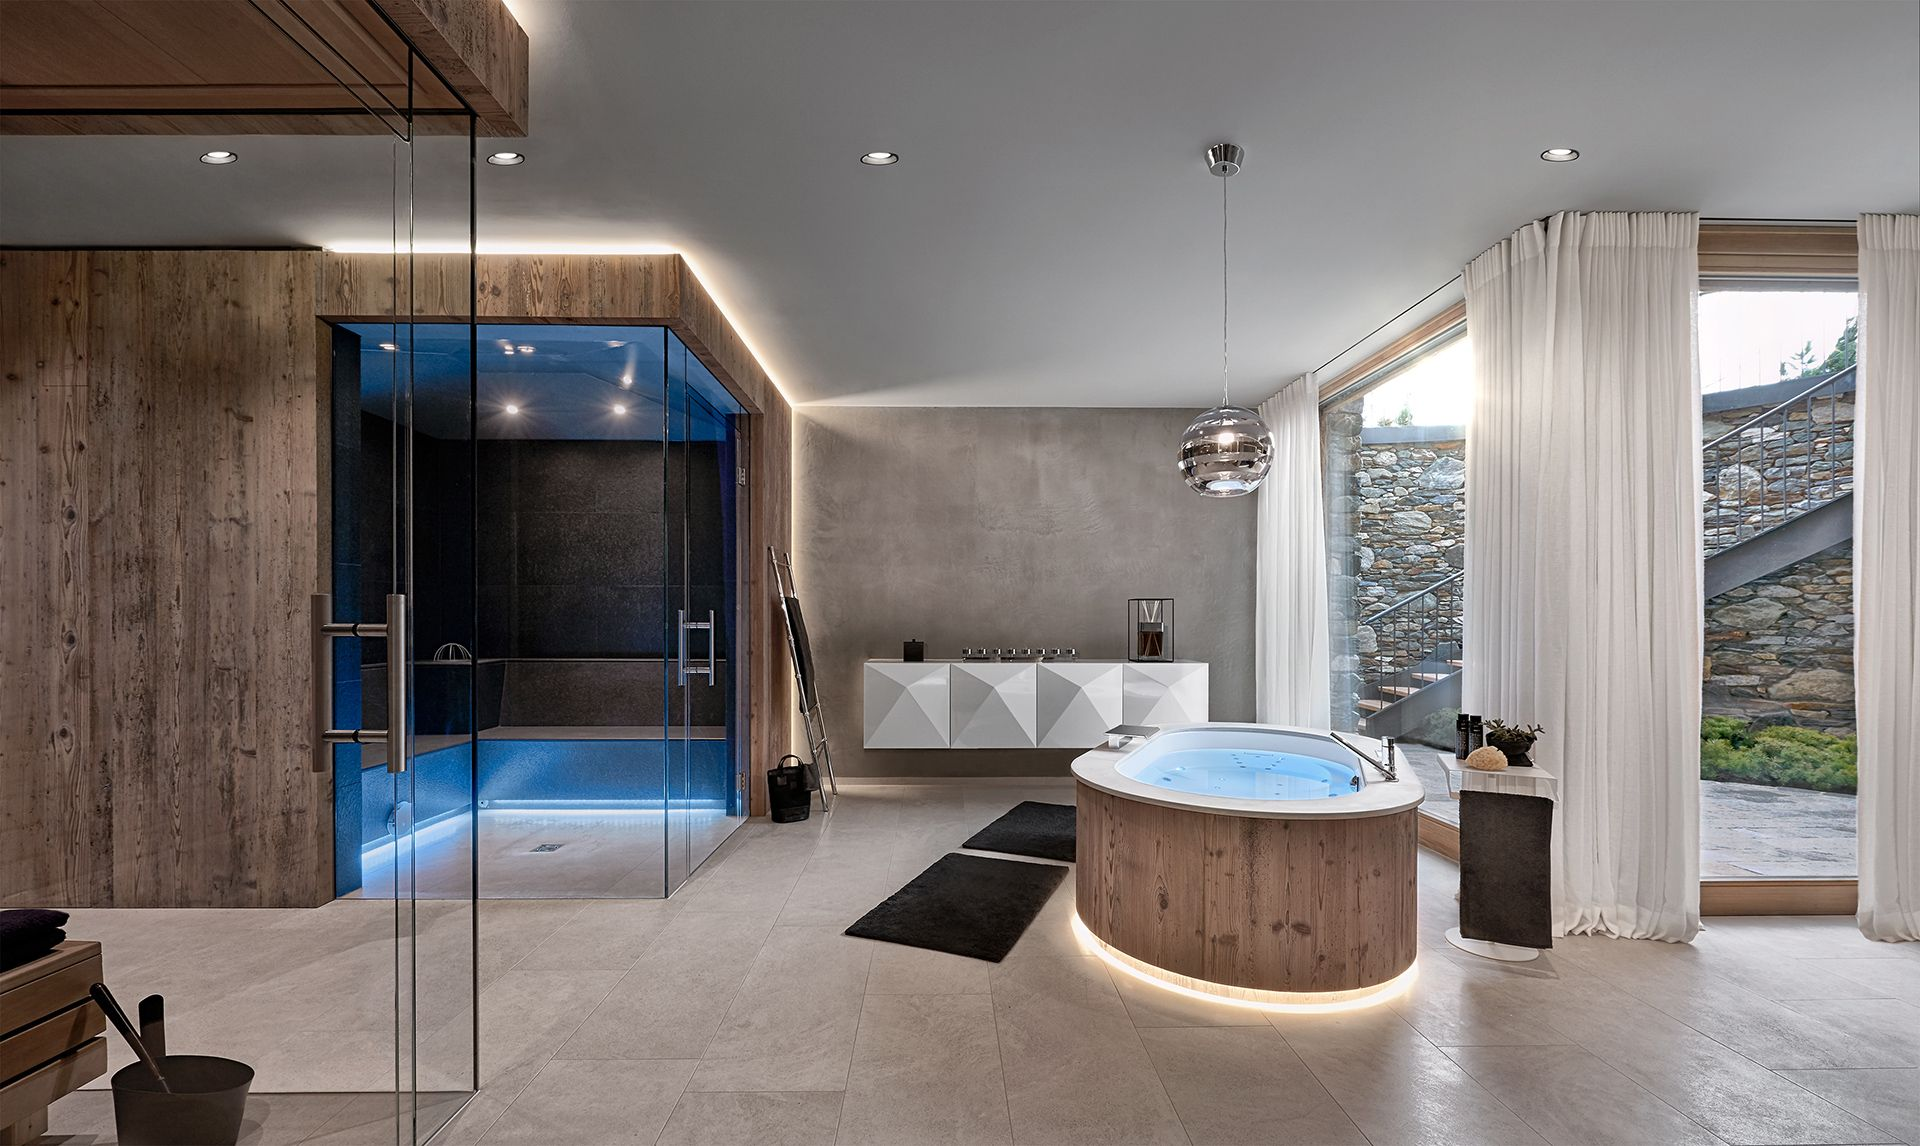 gasteiger bad kitzb hel exklusive einblicke spa and wellness pinterest saunas. Black Bedroom Furniture Sets. Home Design Ideas